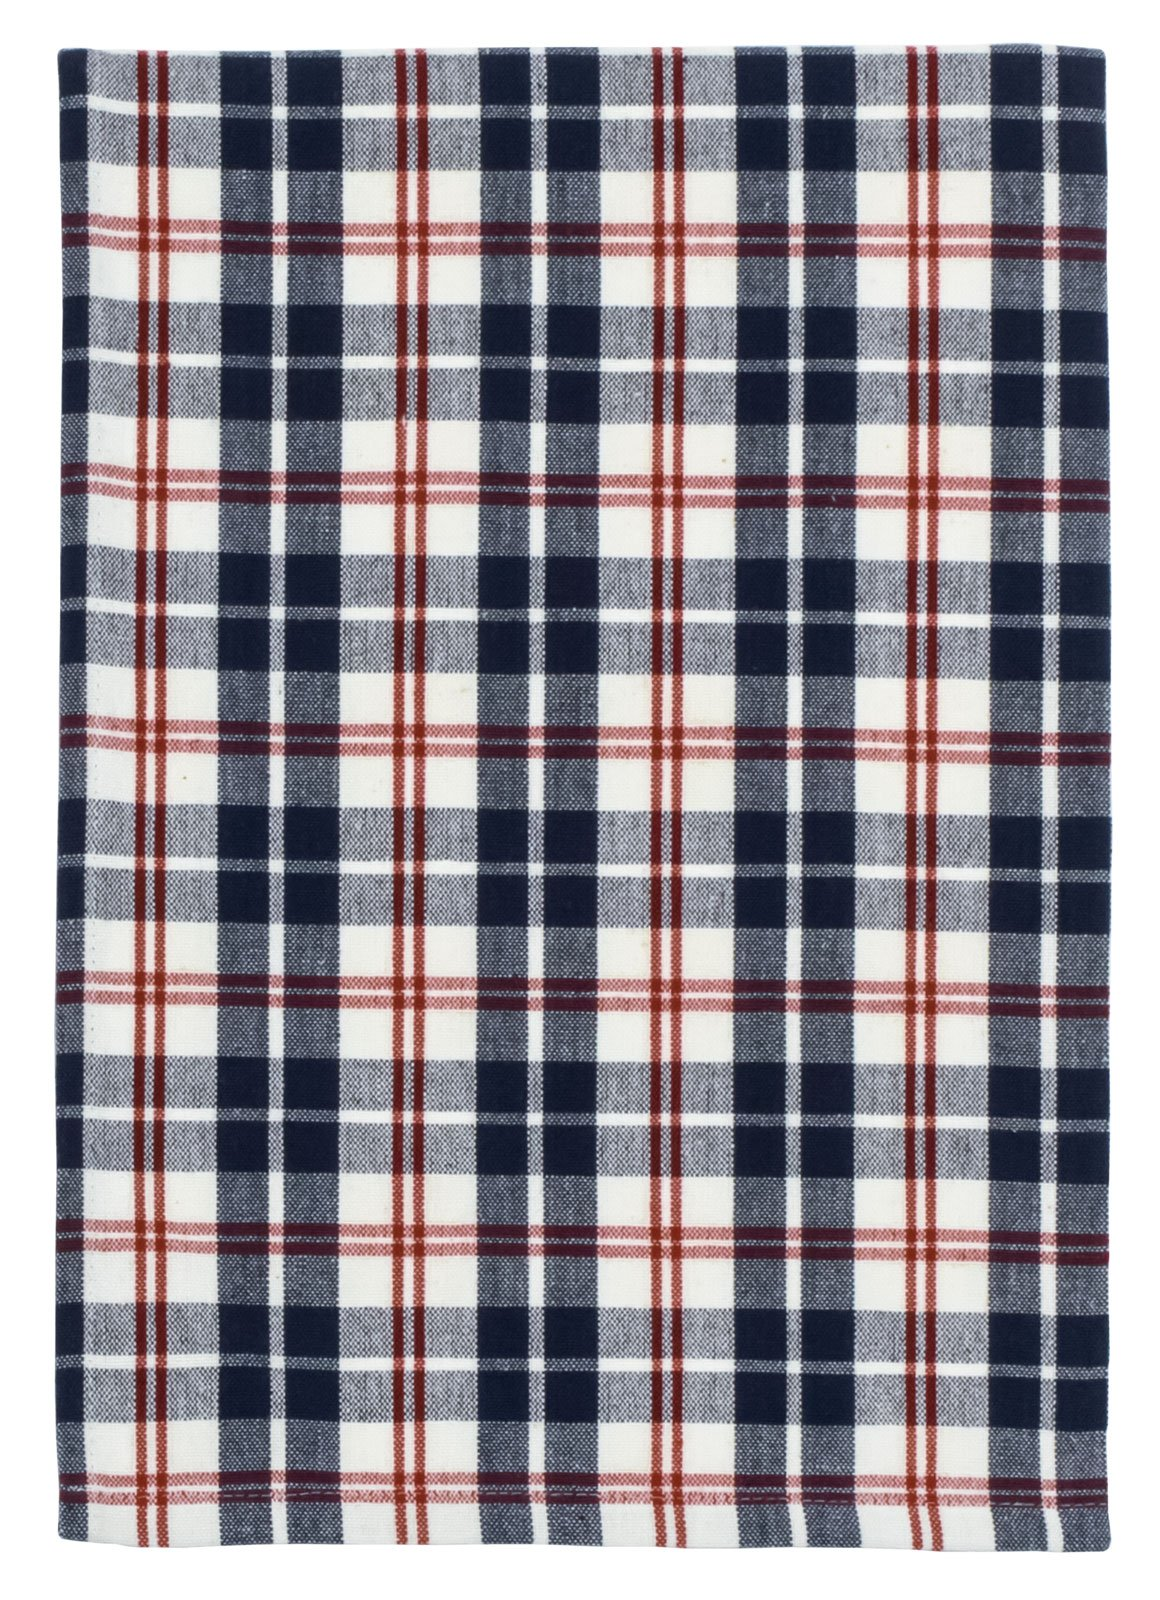 Traders and Company 100% Cotton Navy Red & White Plaid 20''x28'' Dish Towel, Set of 6 - Cape Cod by Traders and Company